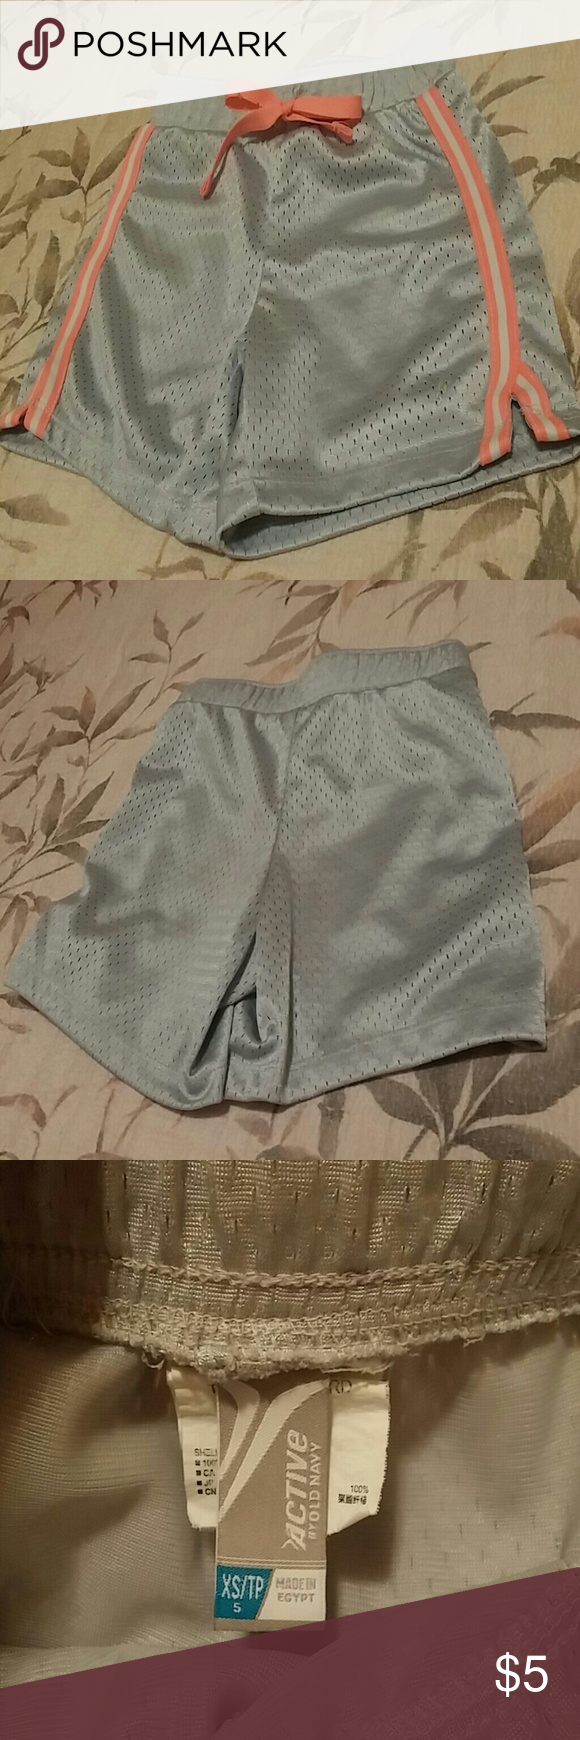 Old Navy girls athletic shorts Old Navy girls gray athletic shorts with a pink and white stripe down each leg and a pink drawstring tie at waist. Old Navy Bottoms Shorts